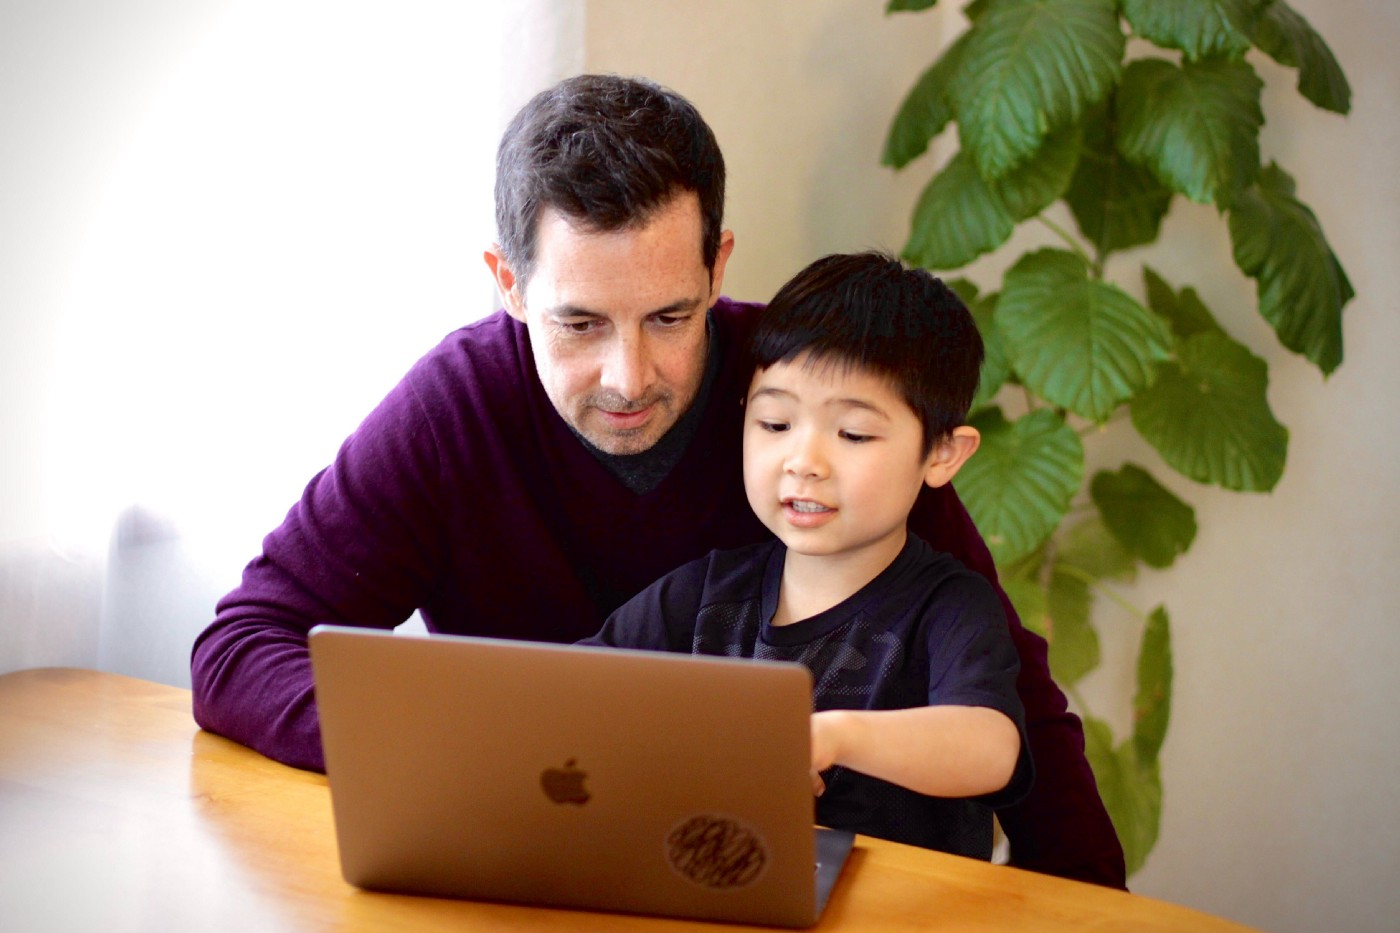 Father and son work together on a laptop computer at the dining table.